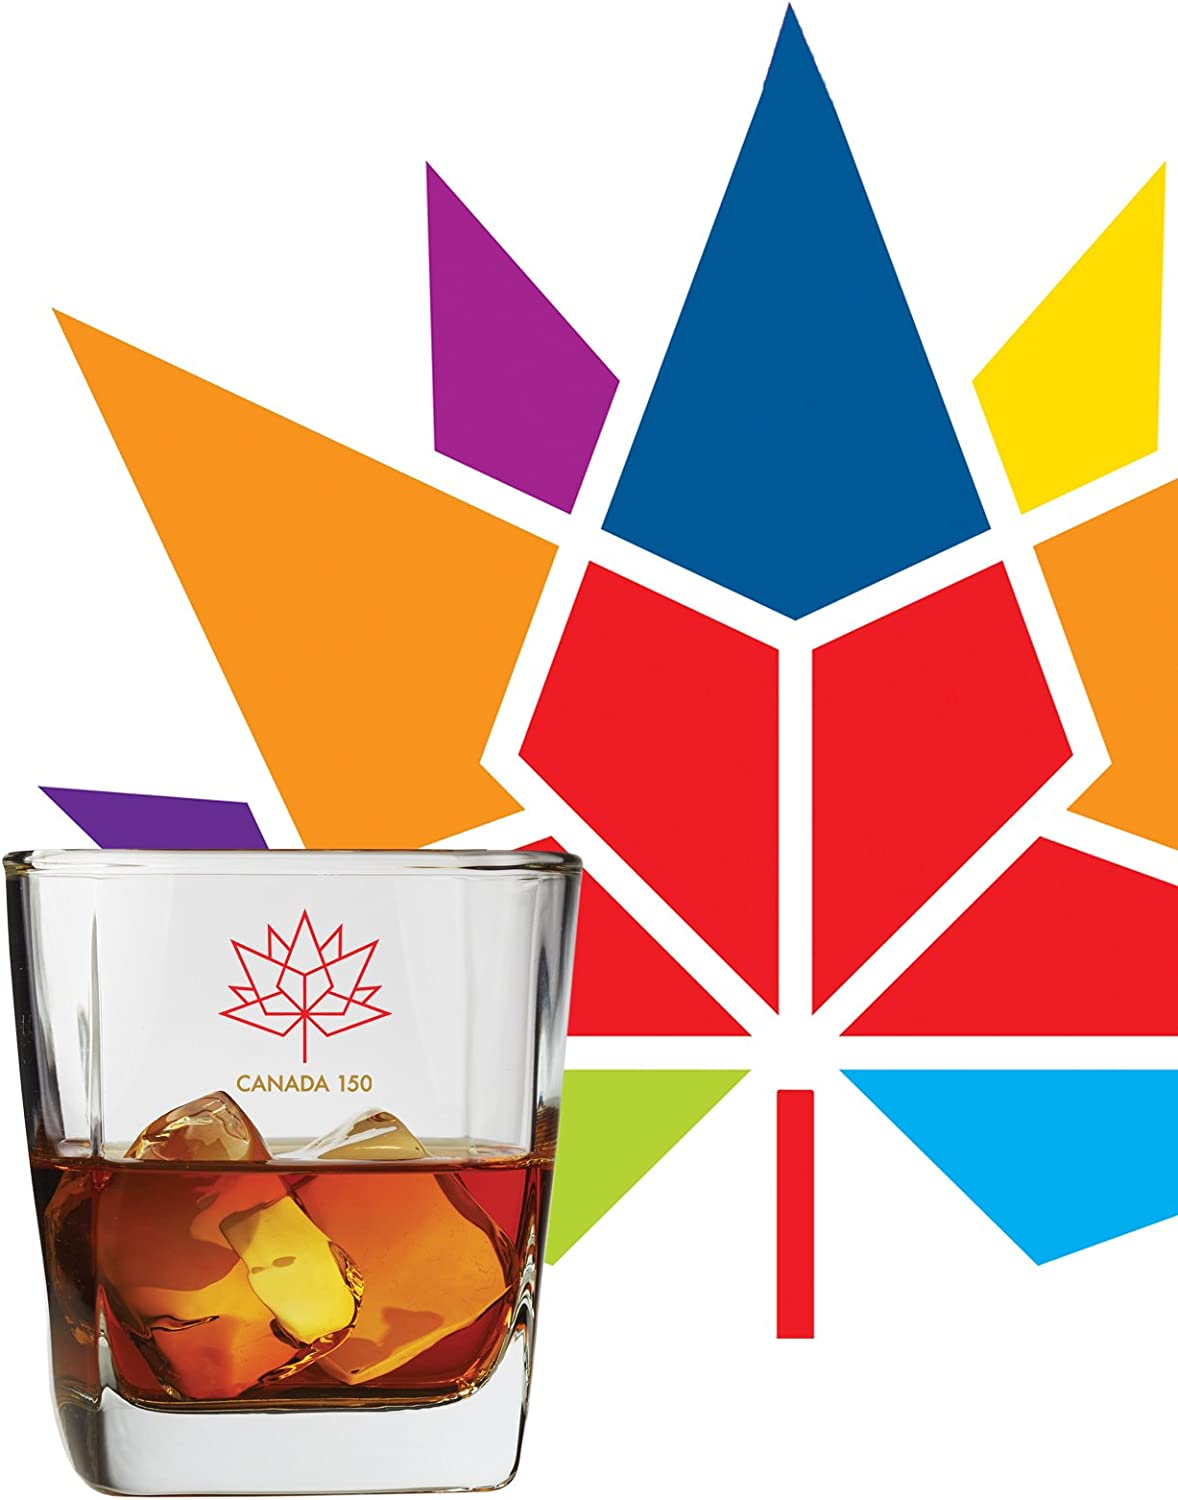 Canada 150 Years Anniversary 1867-2017 Logo Deluxe Whisky Glass Set of 4